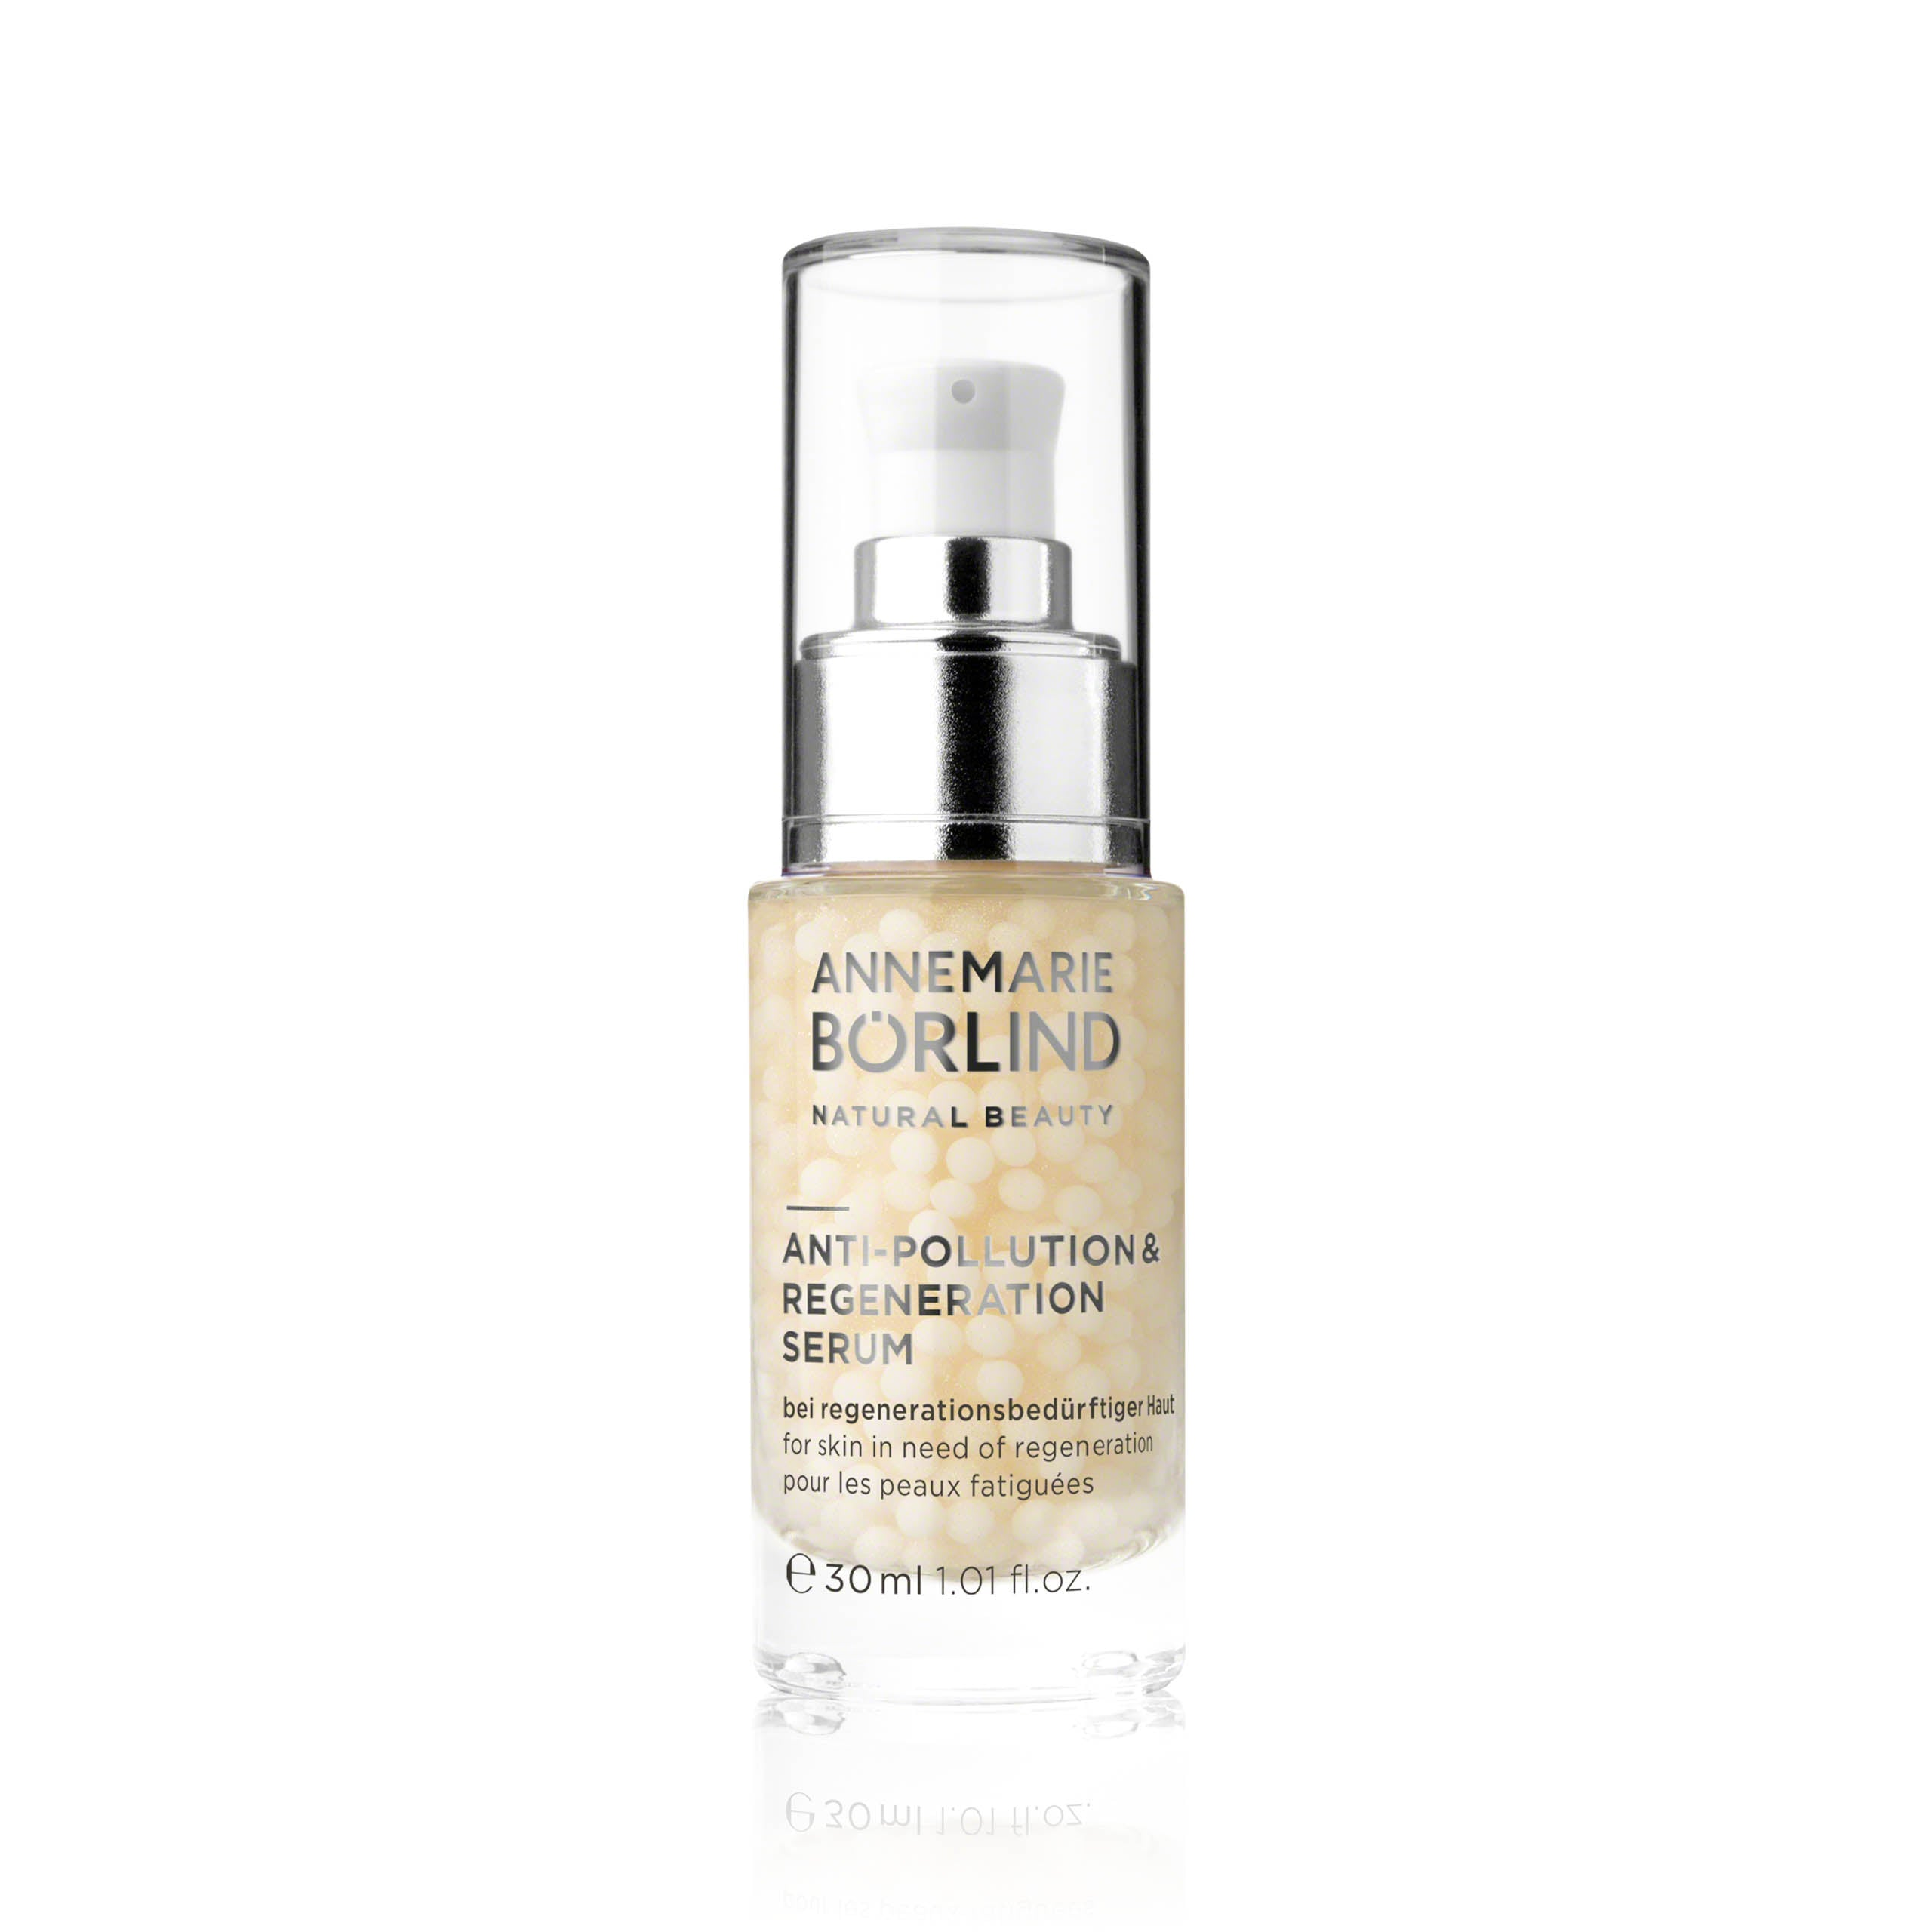 Beauty Pearls Anti-Pollution & Regeneration Serum Annemarie Borlind